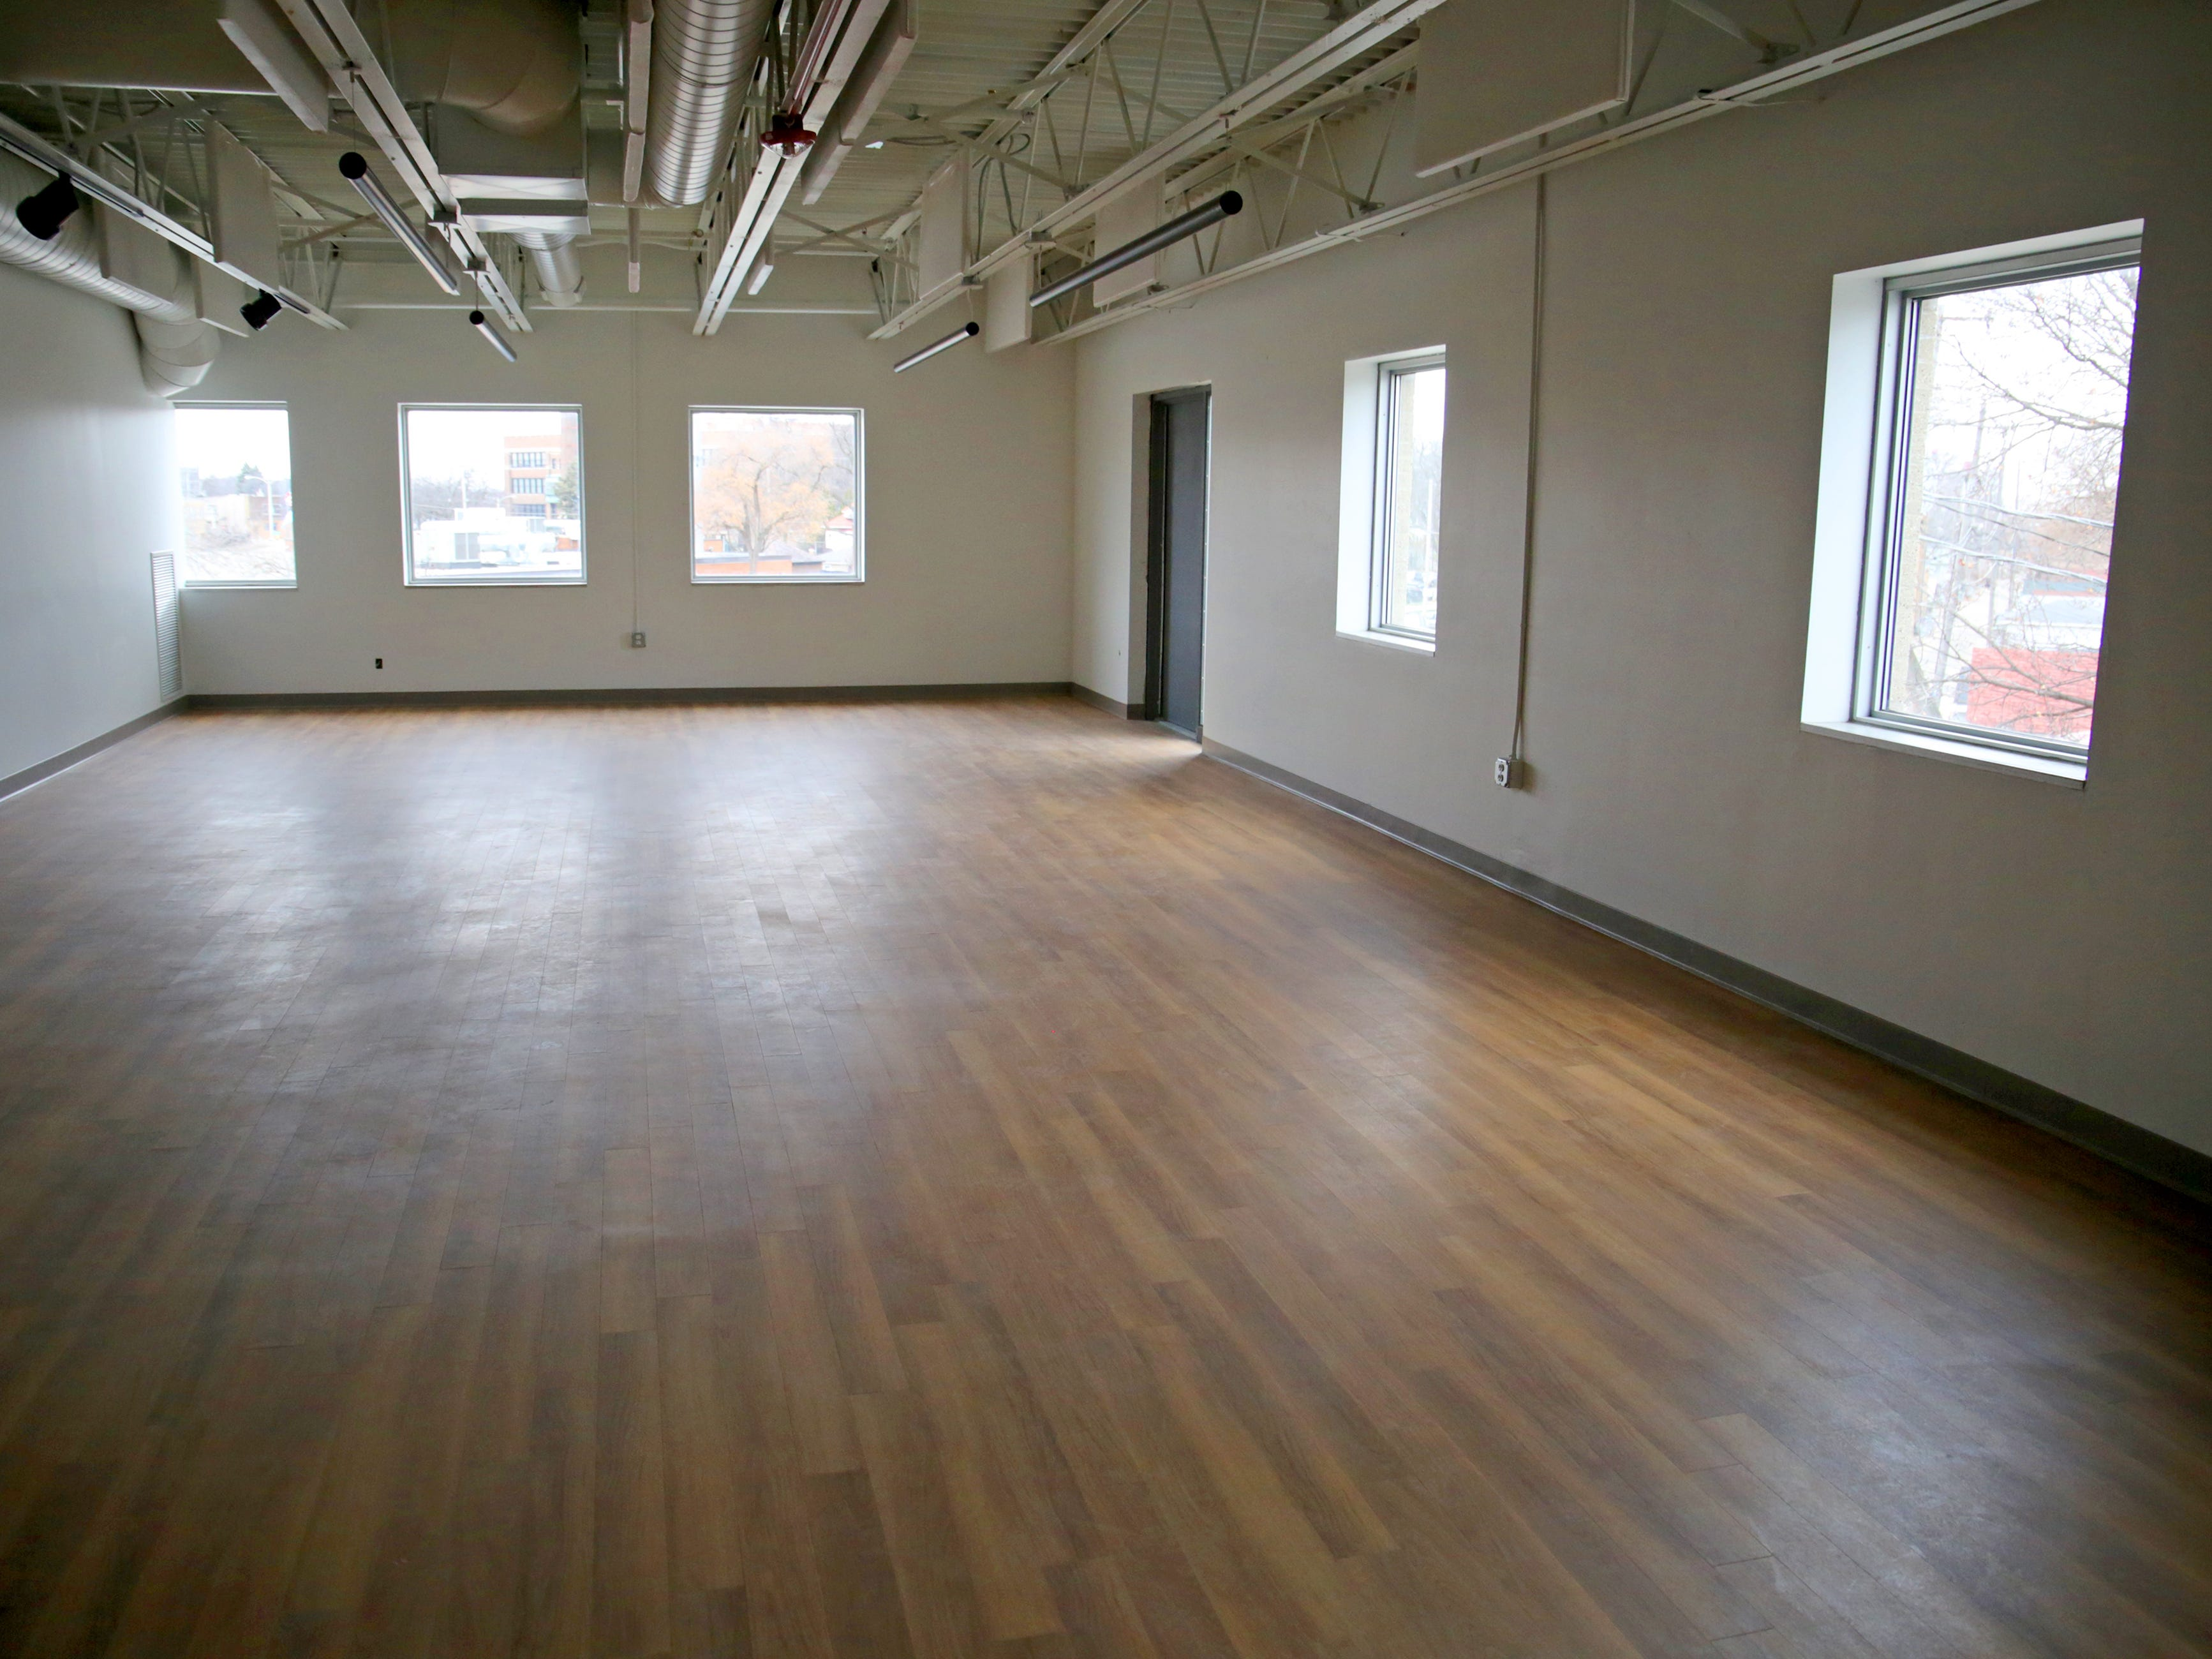 A large studio on the third floor will be home to Embody Yoga.